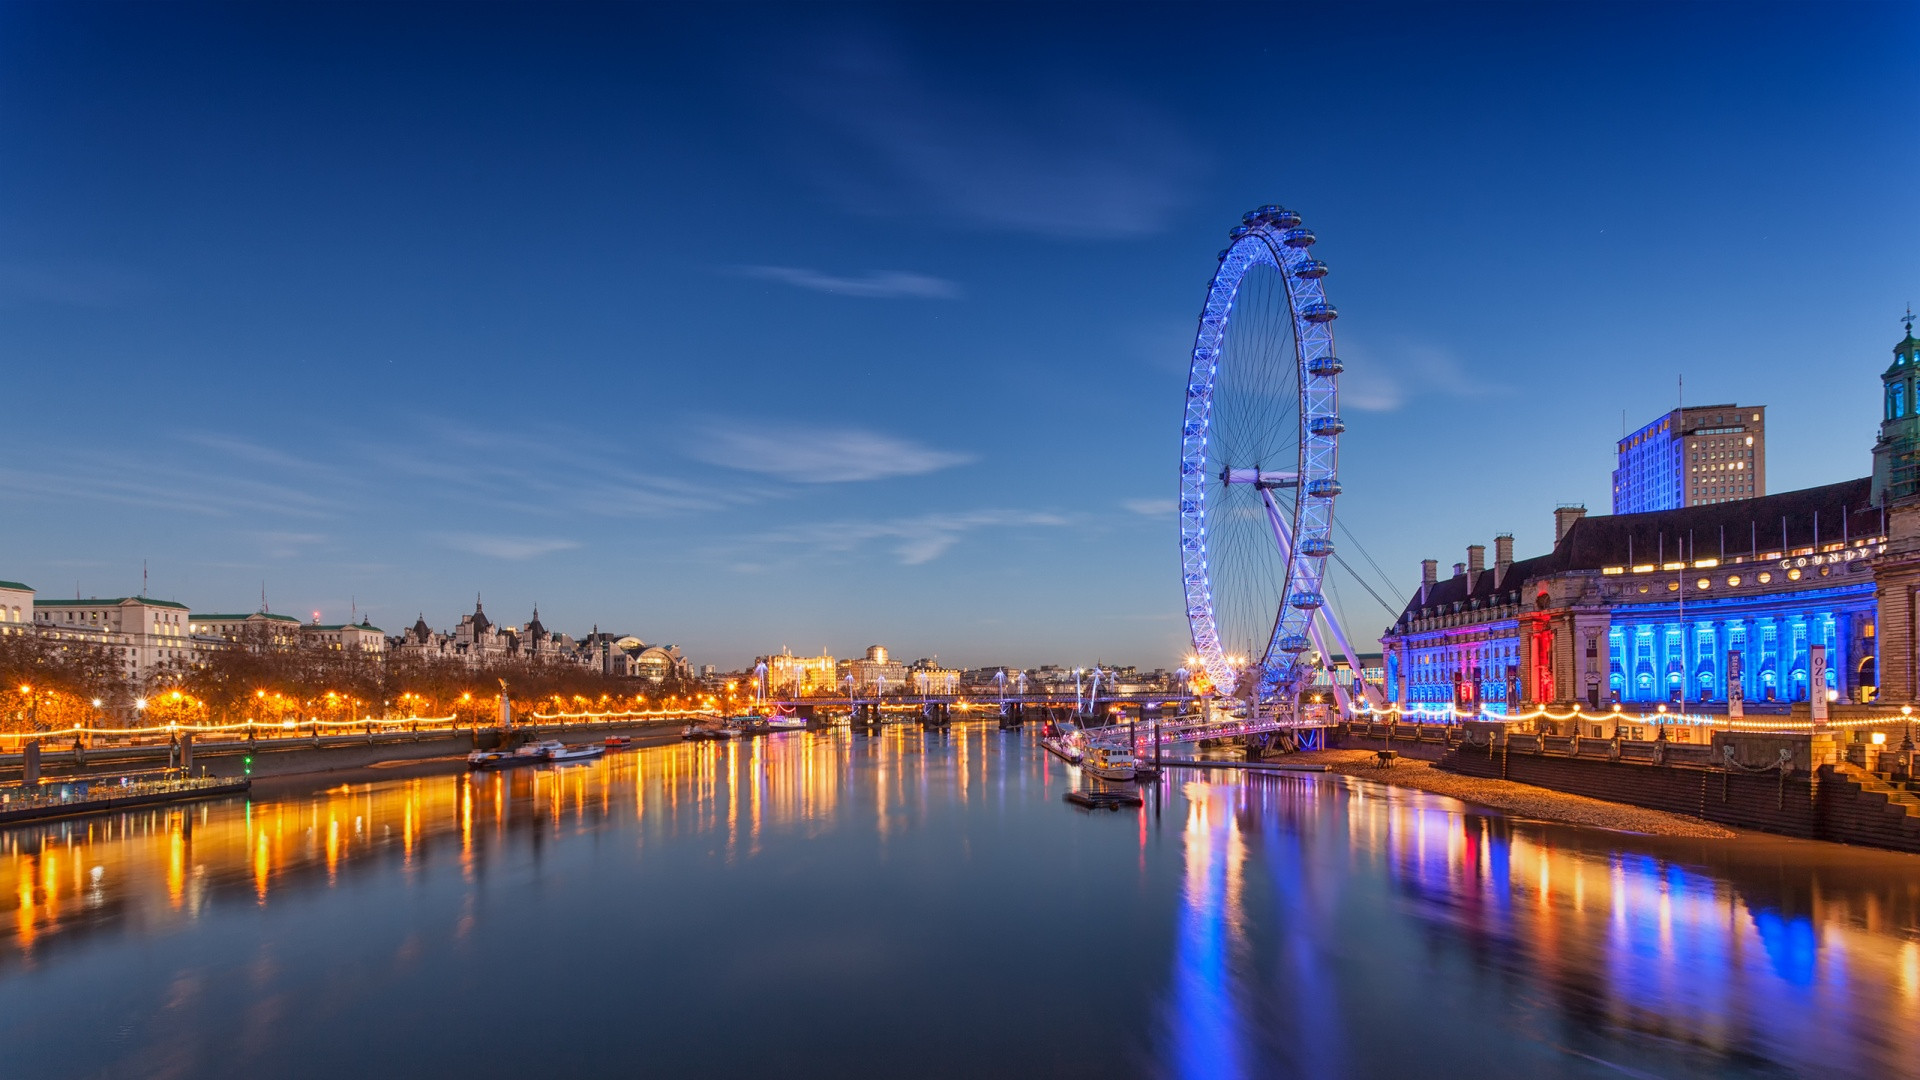 Buildings City Lights England London London Eye Reflections River United  Kingdom free iPhone or Android Full HD wallpaper.